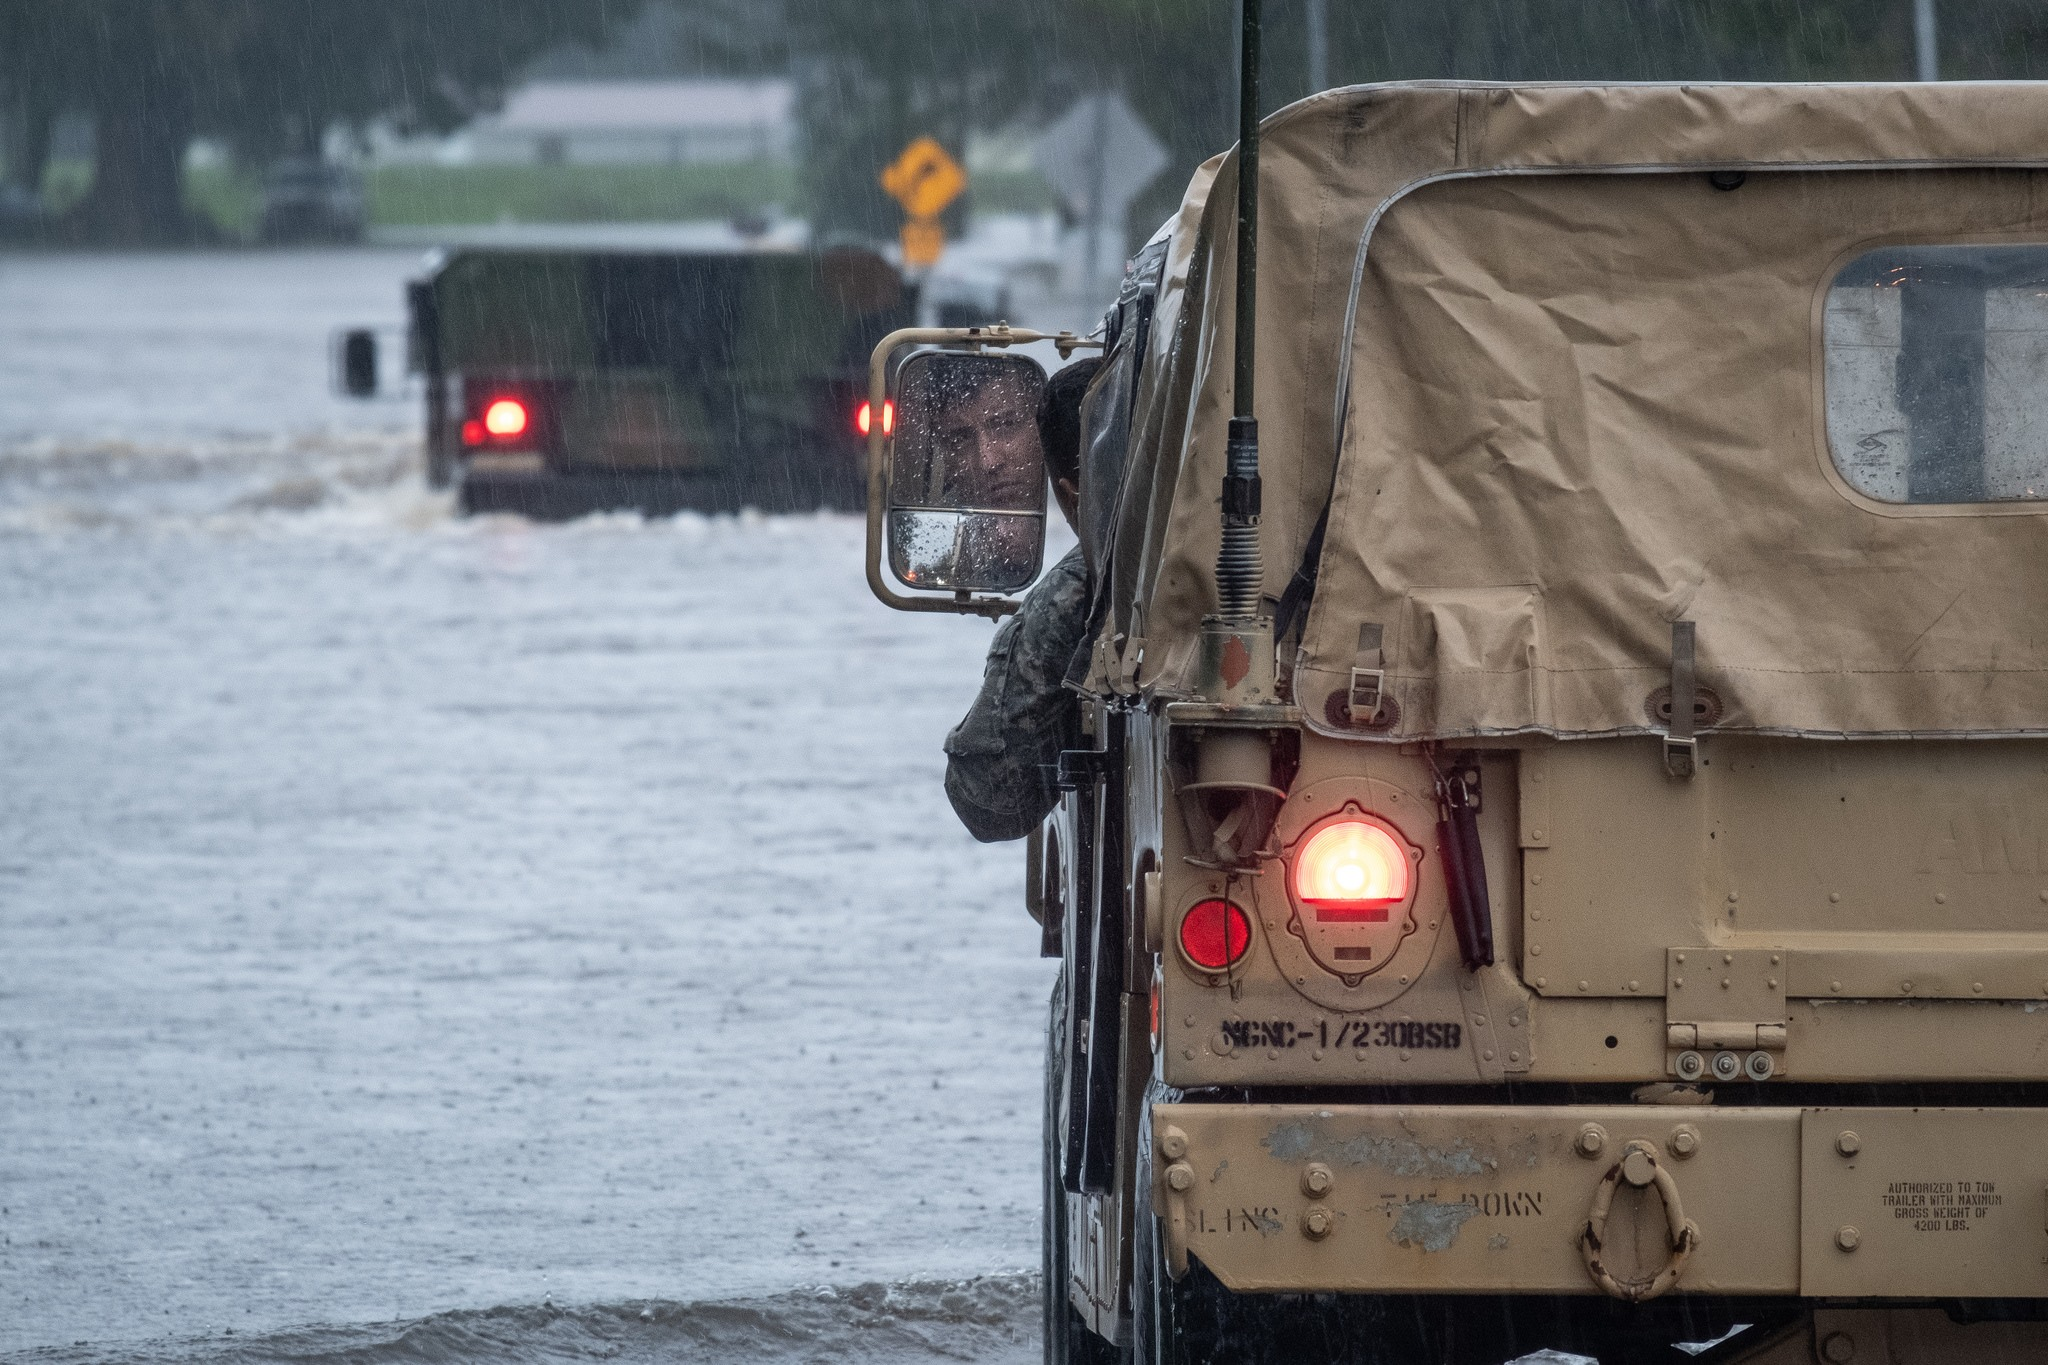 <div class='meta'><div class='origin-logo' data-origin='none'></div><span class='caption-text' data-credit='National Guard/Facebook'>The National Guard shared these photos of rescues, including near Beulaville, NC, on their Facebook page.</span></div>